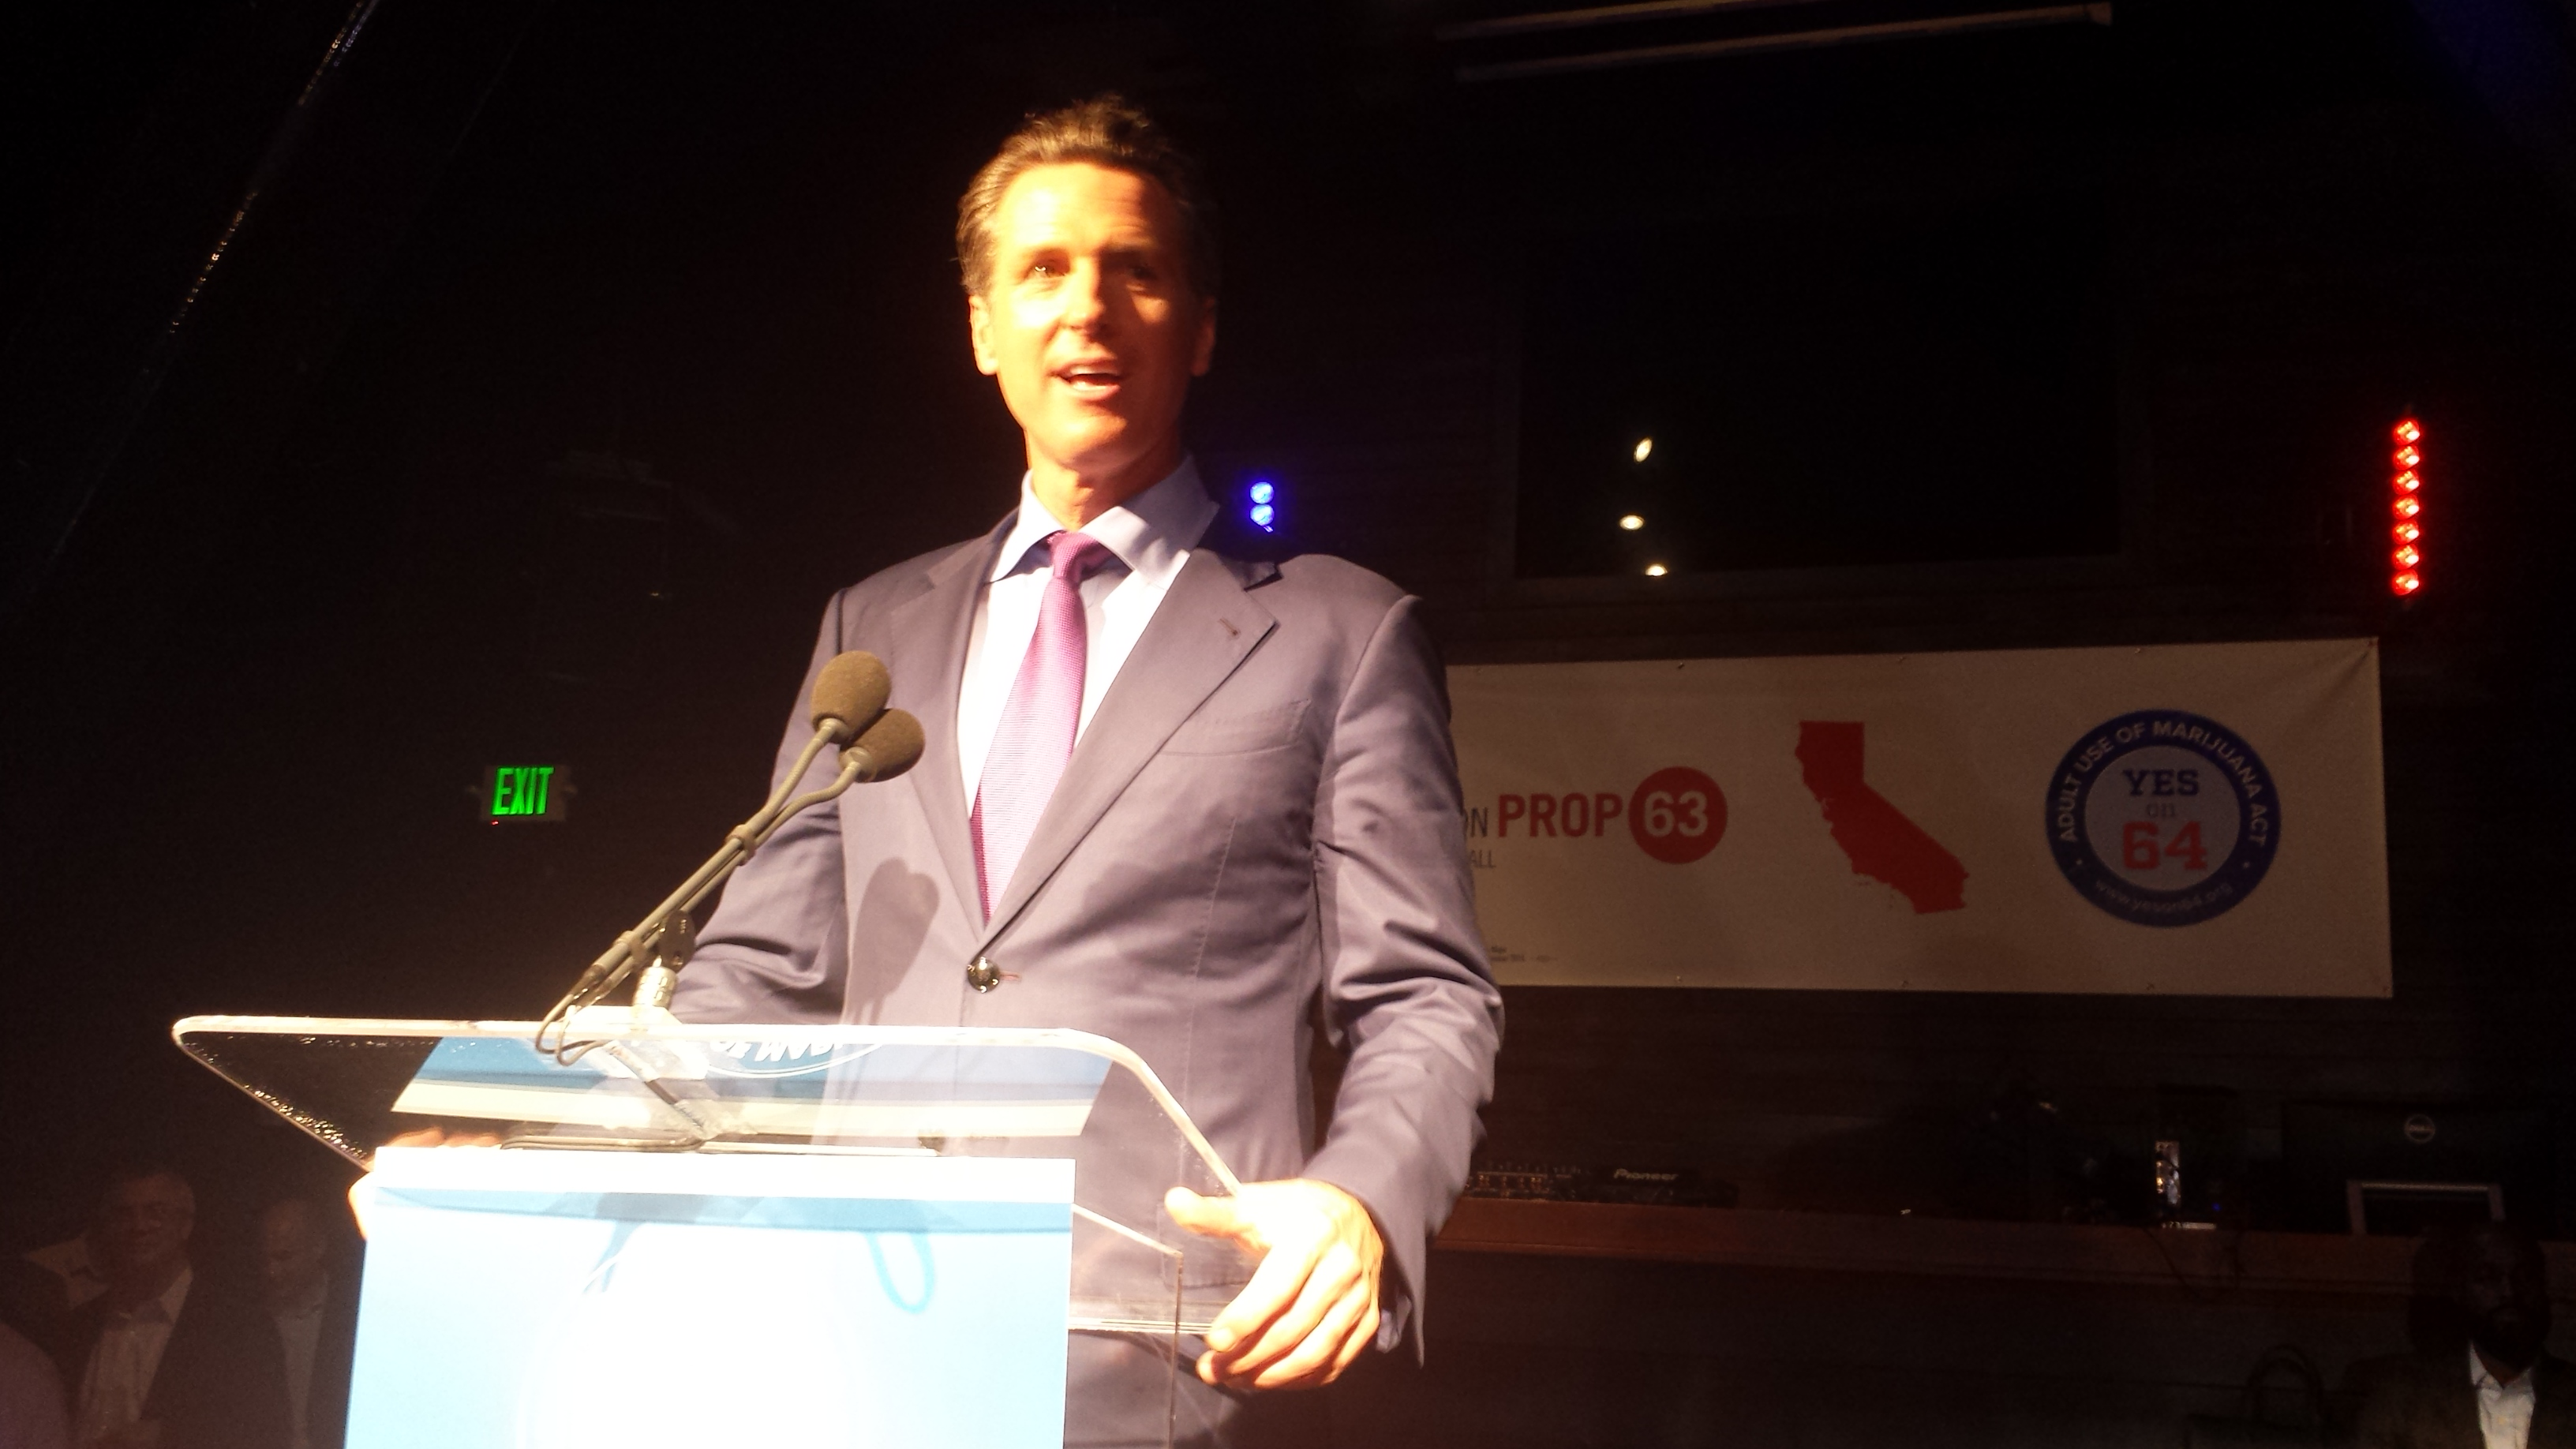 California Lt. Gov. Gavin Newsom on election night 2016